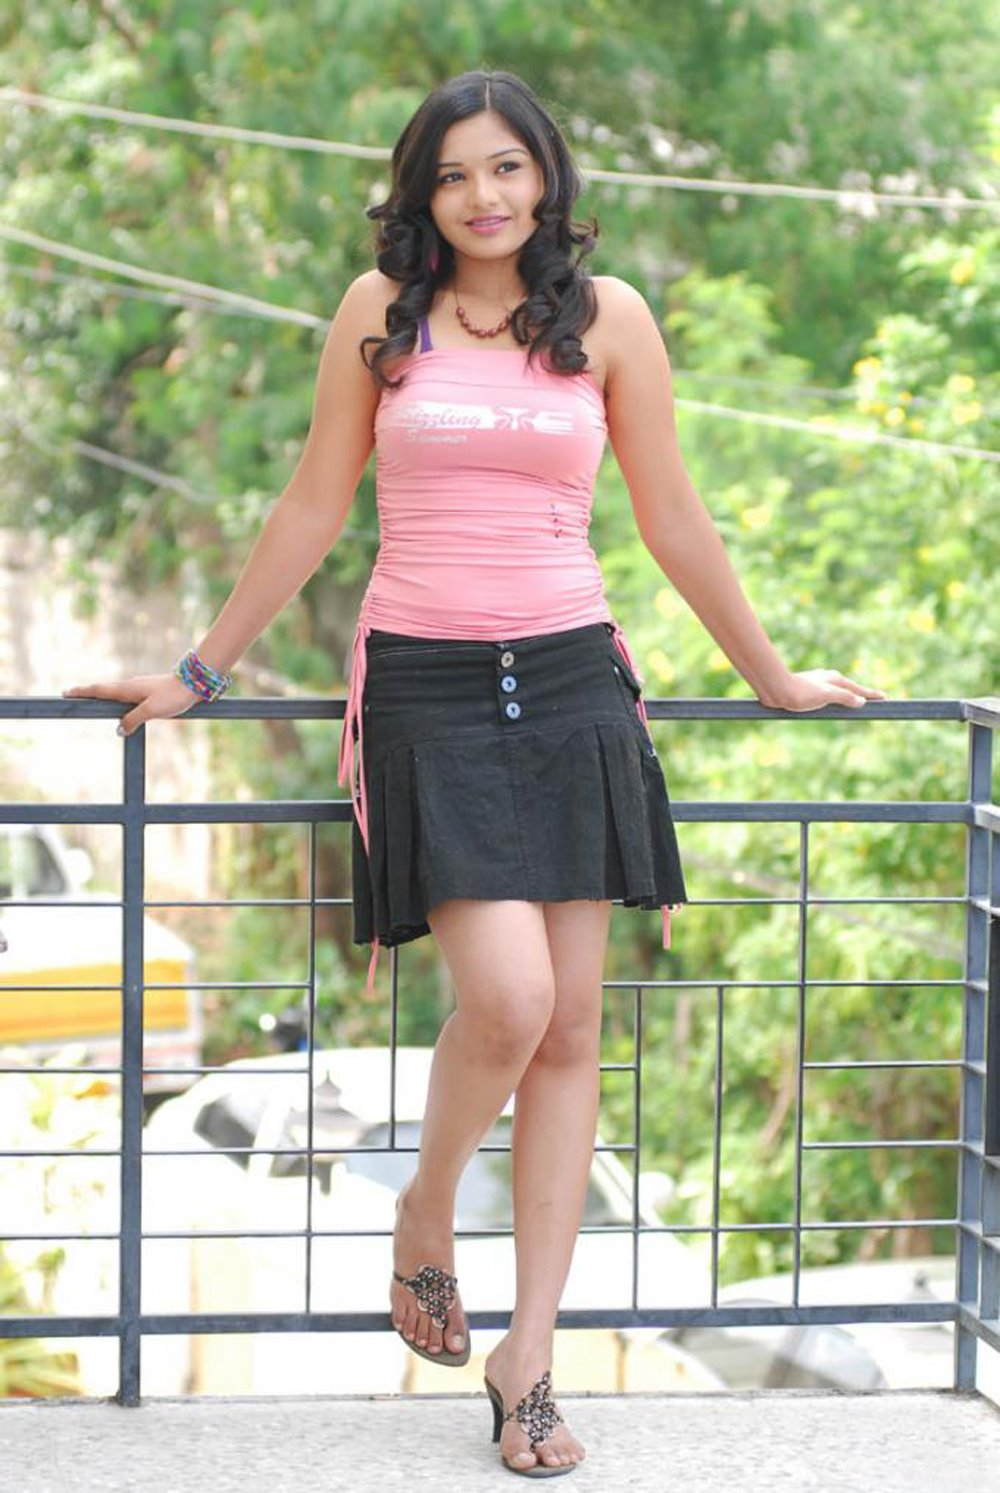 Hot indian girls in mini skirt and shorts nude nude the